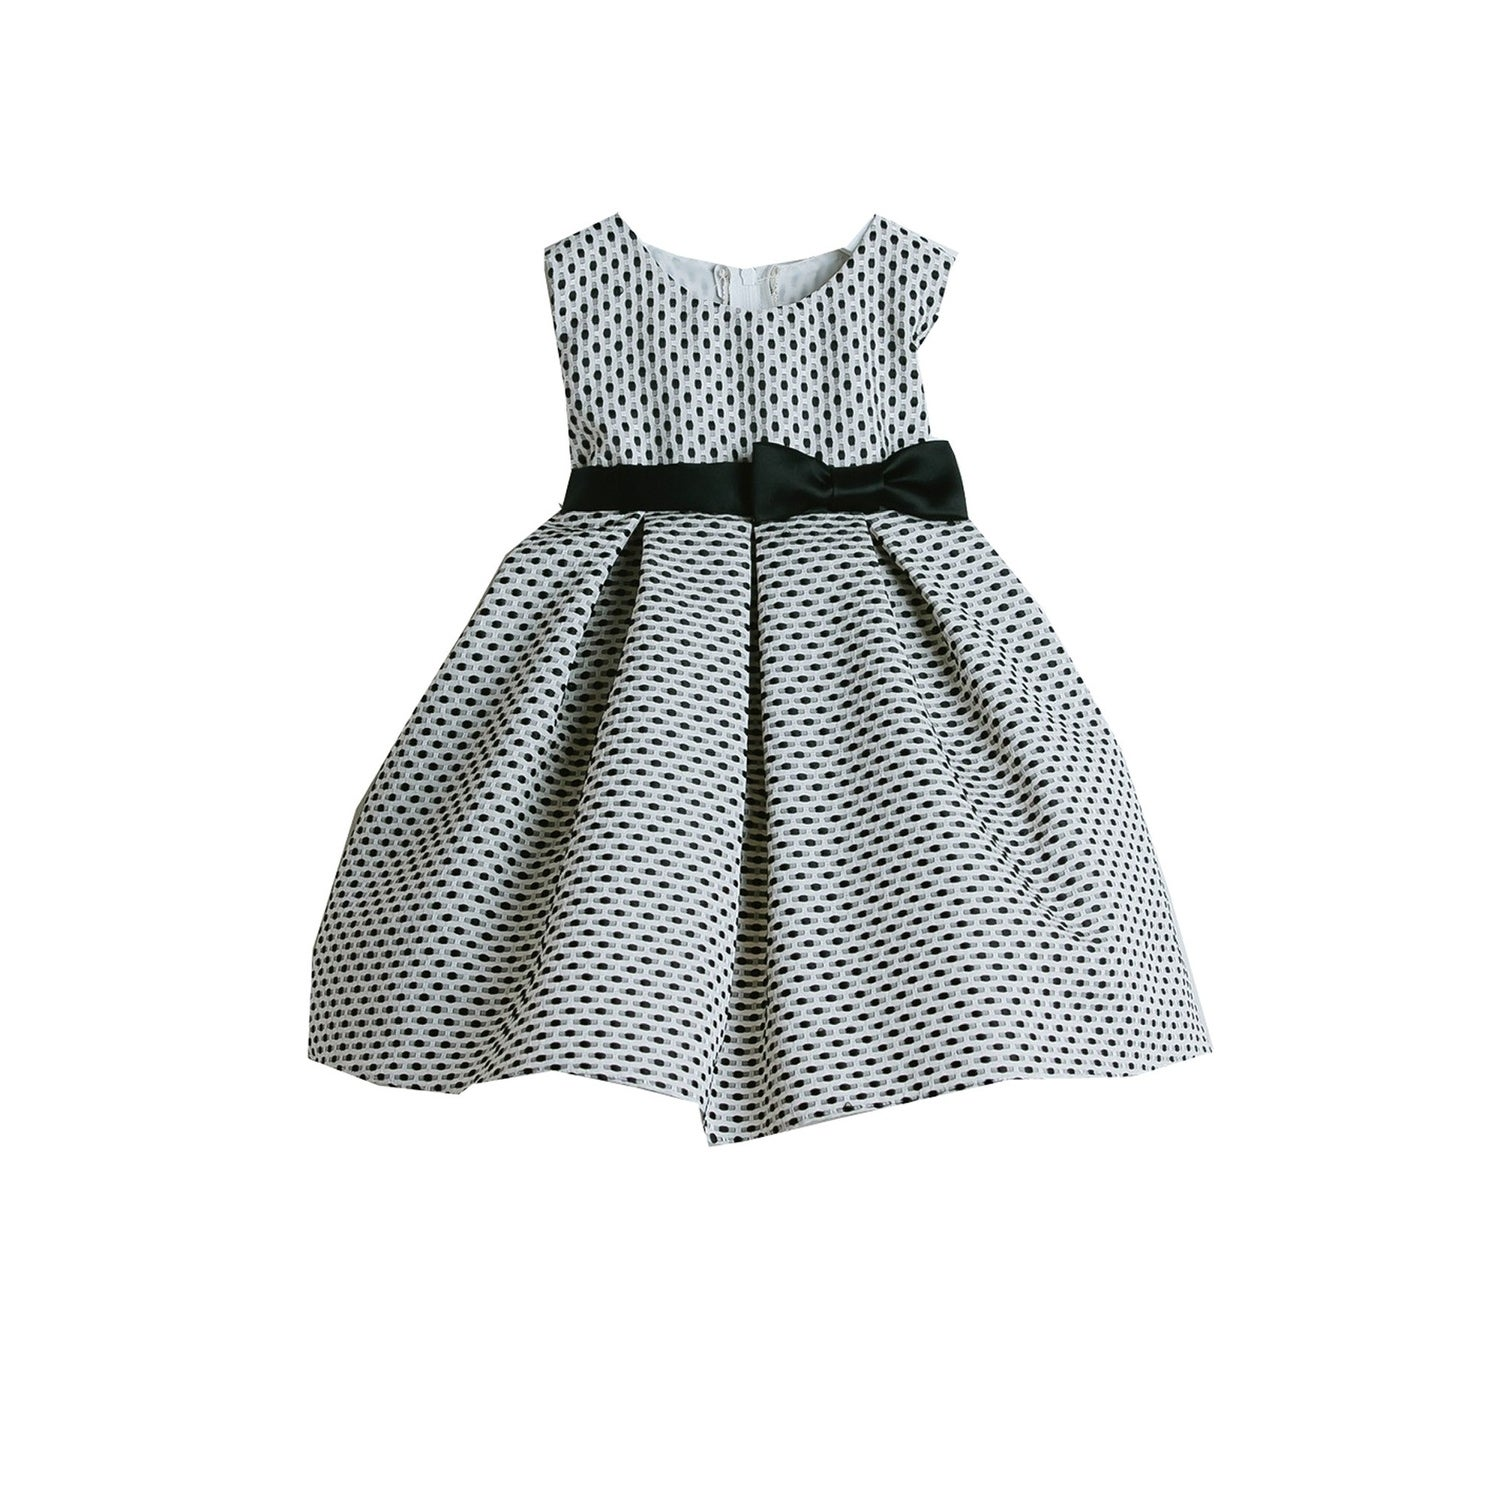 Shop Sweet Kids Baby Girls Black Petite Polka Dot Pleated Flower